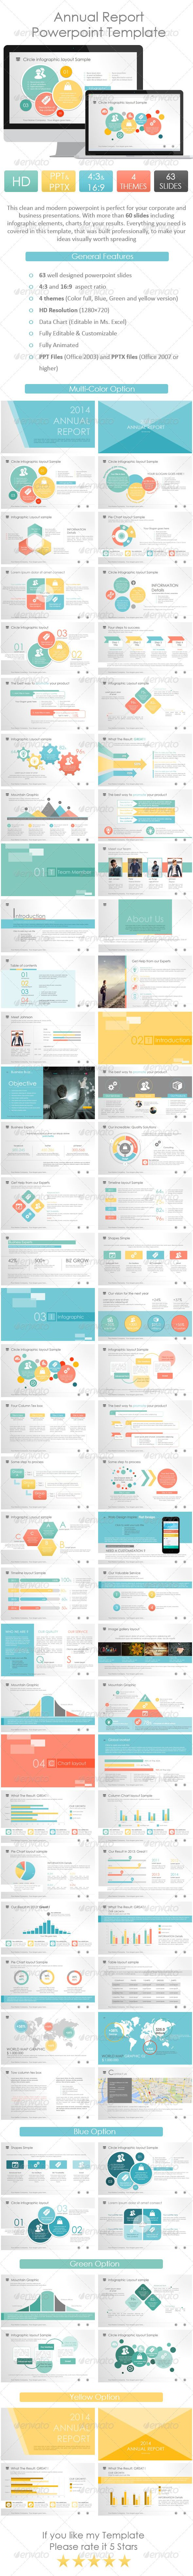 2014 Annual Report Powerpoint Template (Powerpoint Templates) #Powerpoint #Powerpoint_Template #Presentation